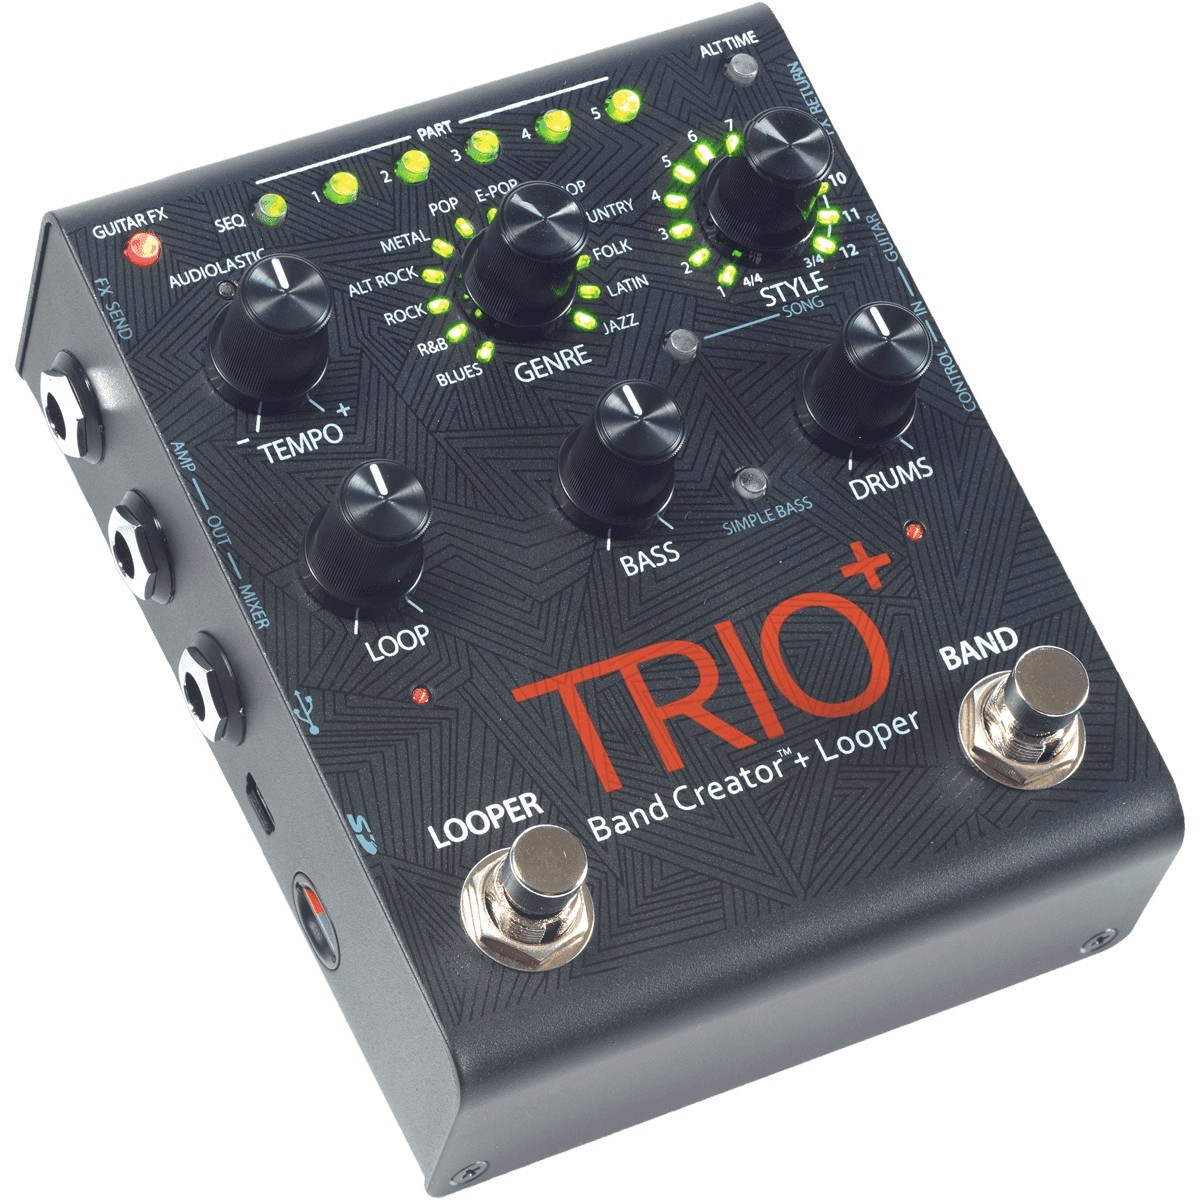 DIGITECH Trio Plus Band Creator